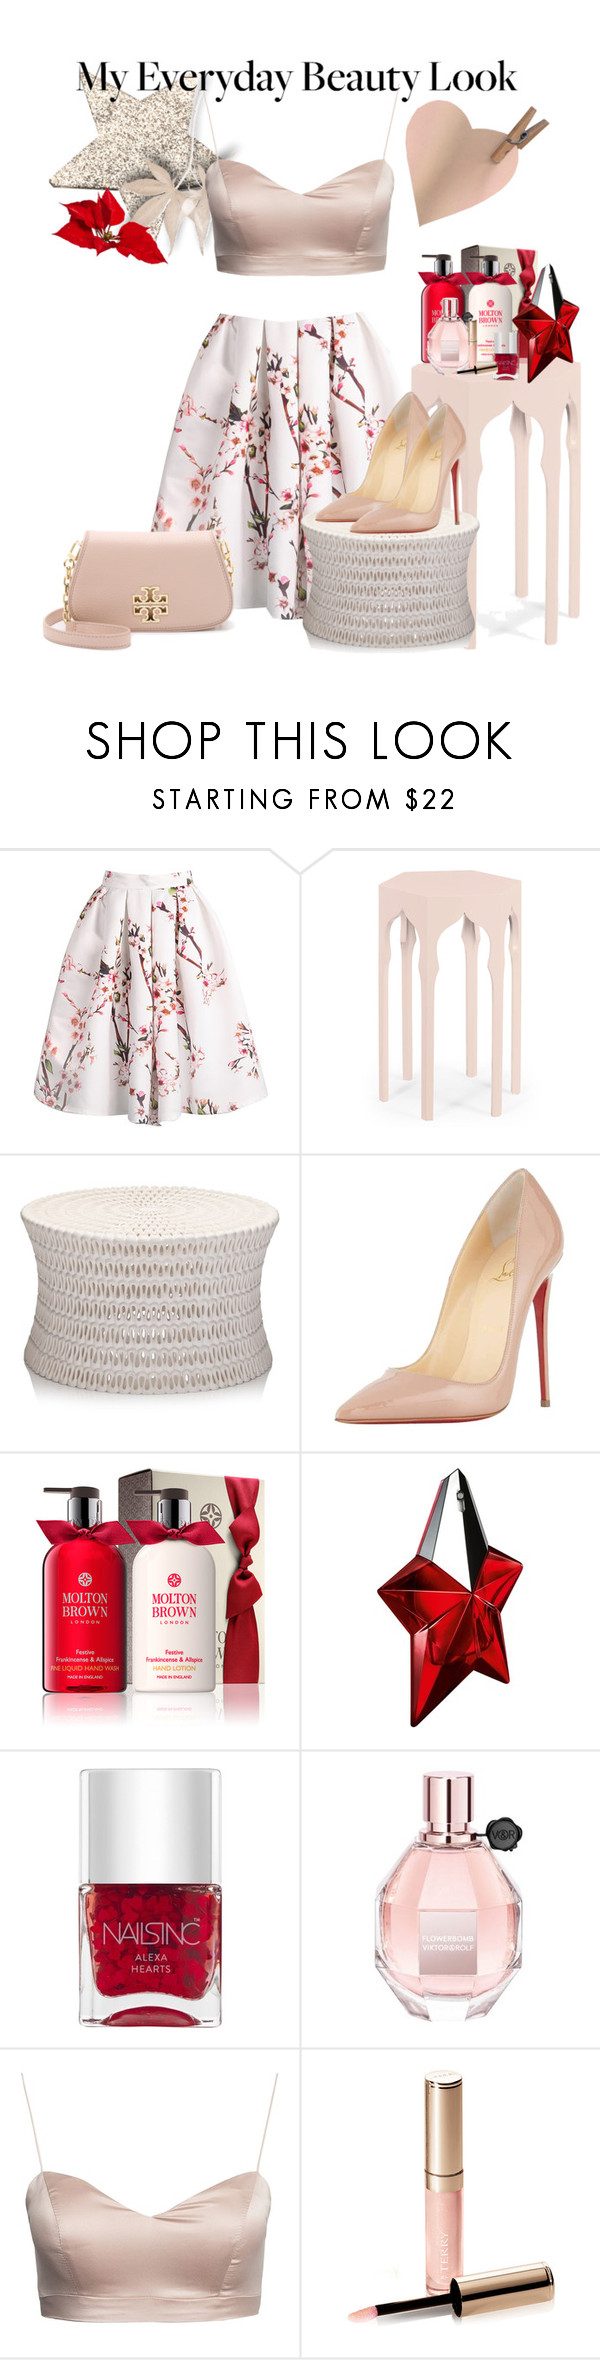 """Stars Red Look"" by anahcamilo on Polyvore featuring beauty, Jonathan Charles Fine Furniture, Christian Louboutin, Thierry Mugler, Nails Inc., Viktor & Rolf, By Terry and Tory Burch"